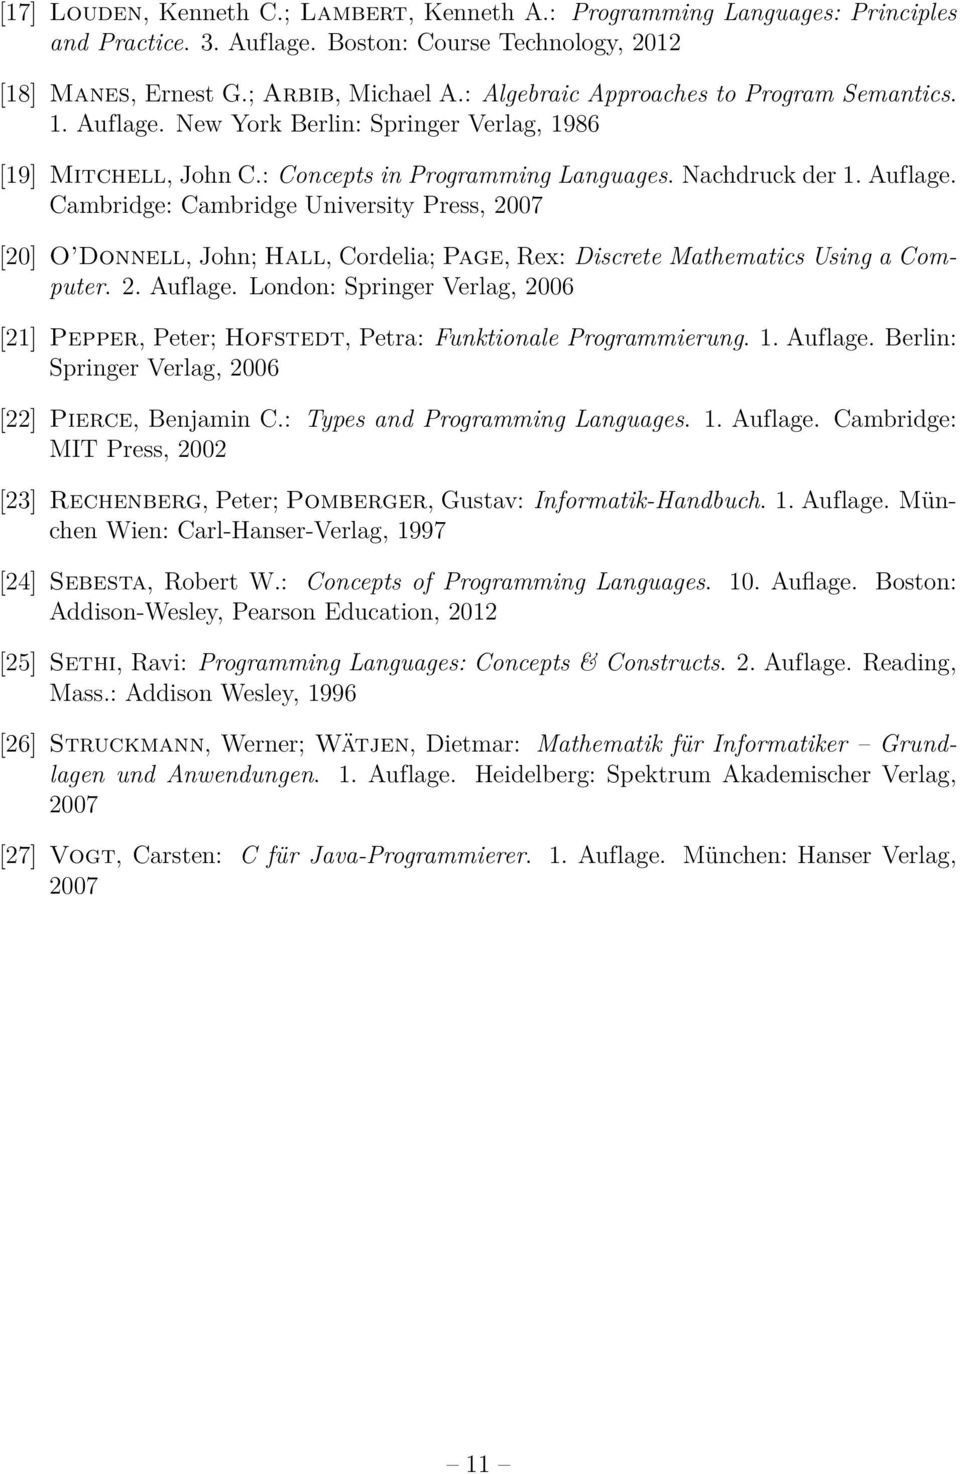 filetype pdf robert w sebesta concepts of programming languages